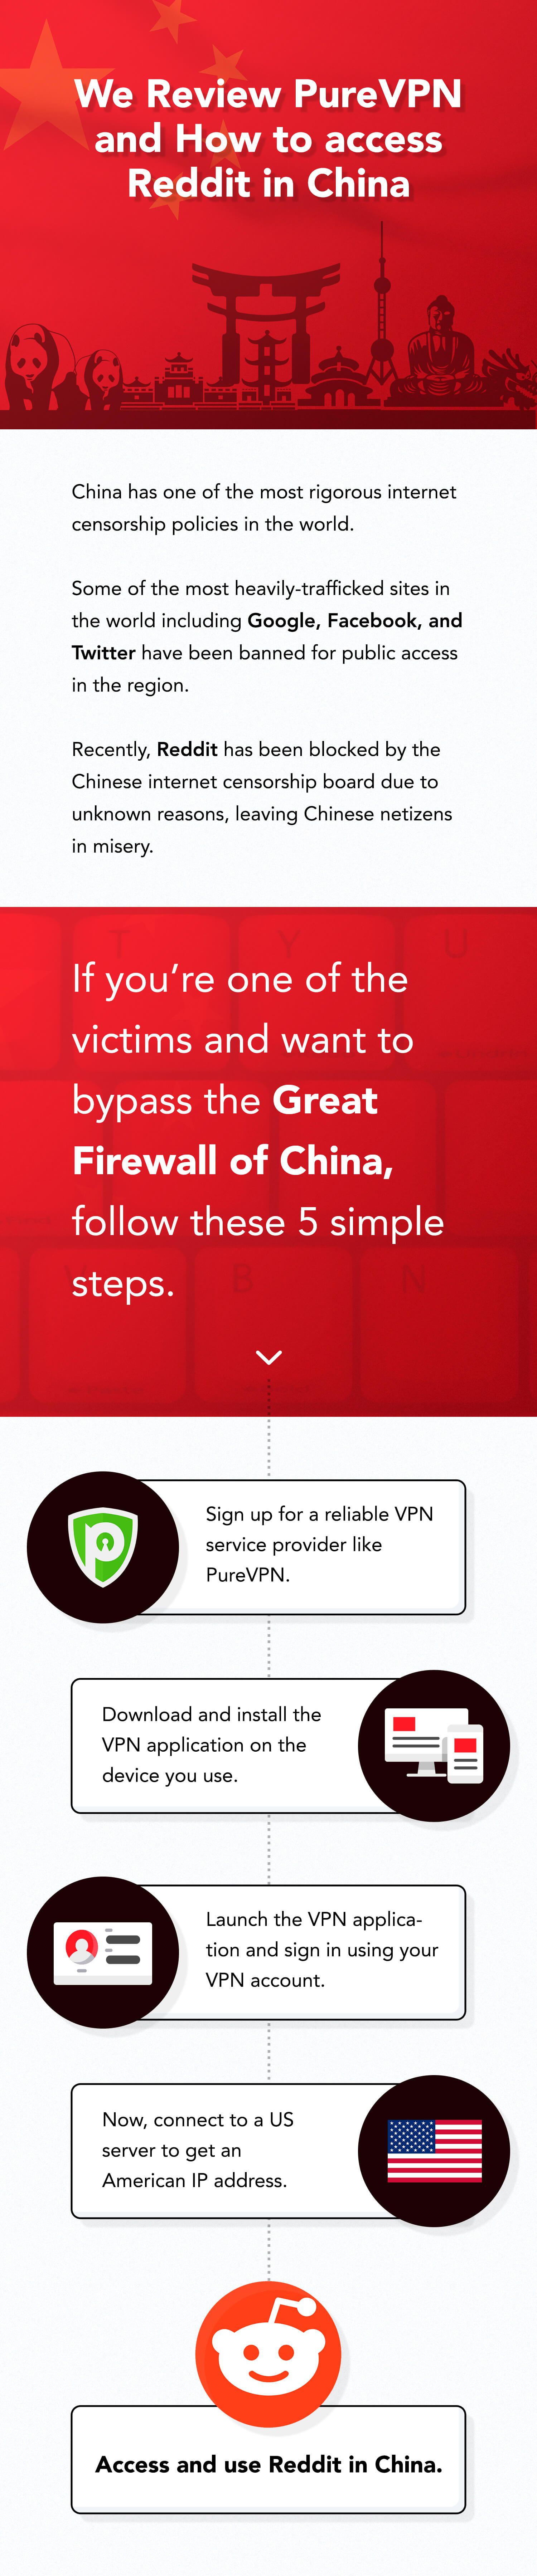 71df6357a033797c68fb6a732126a790 - Vpn That Can Connect To China